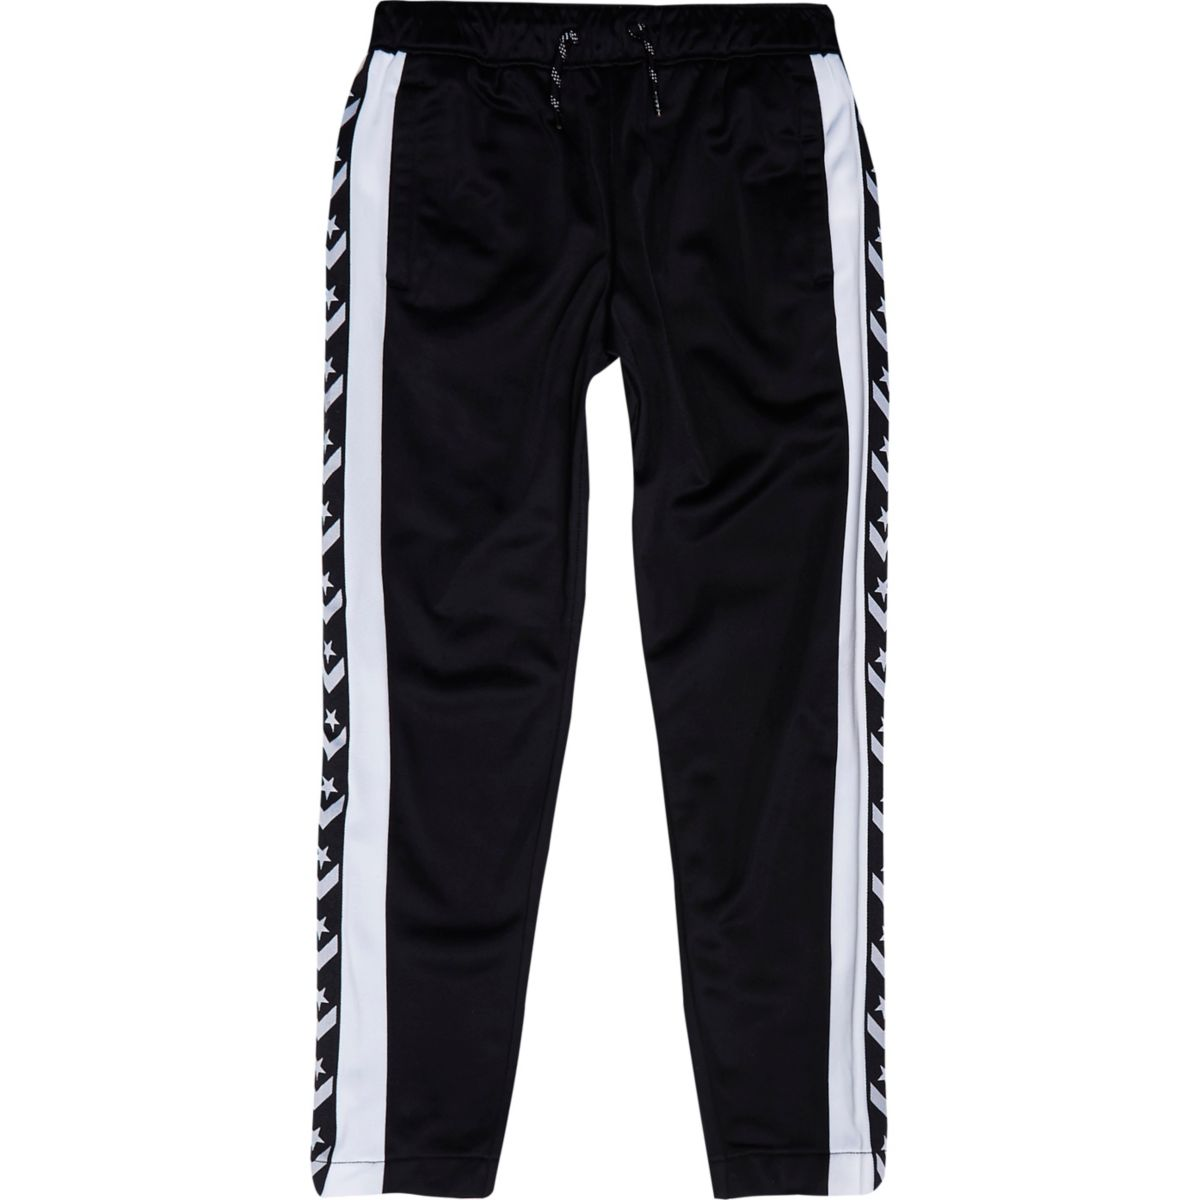 Boys black Converse tracksuit bottoms